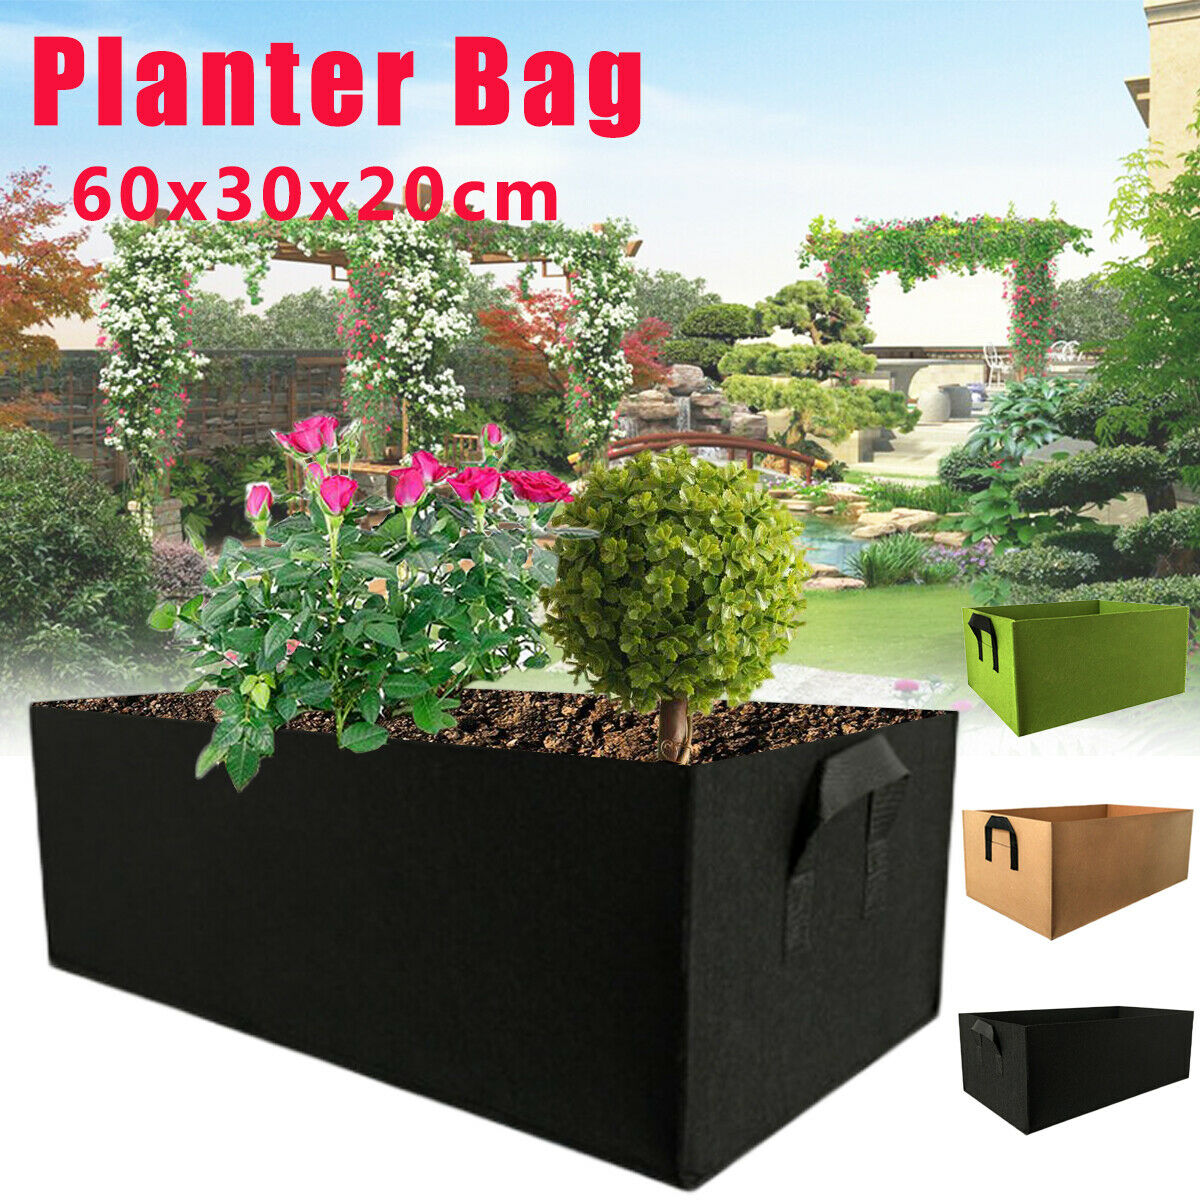 Large Fabric Pots Fruits L, Black KERMAT Garden Growing Bags Square Planting Container for Indoor Garden Planter Pot for Plants Vegetables Tomato Plant Bags with Handles